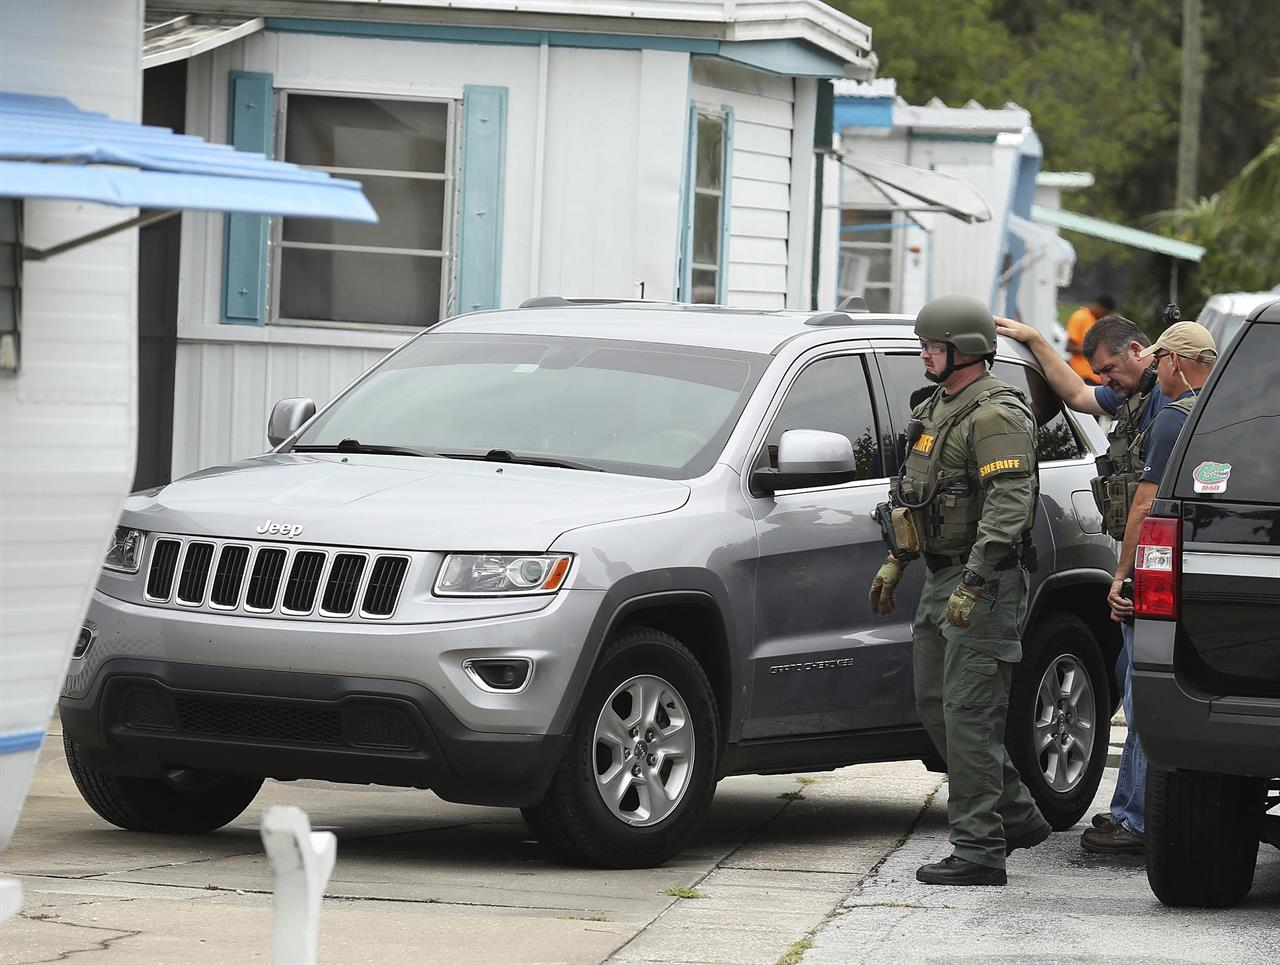 Factory Shooting Leaves 2 Teens Without Mother Or Father New York Ny Jeep That Looks Like Rober